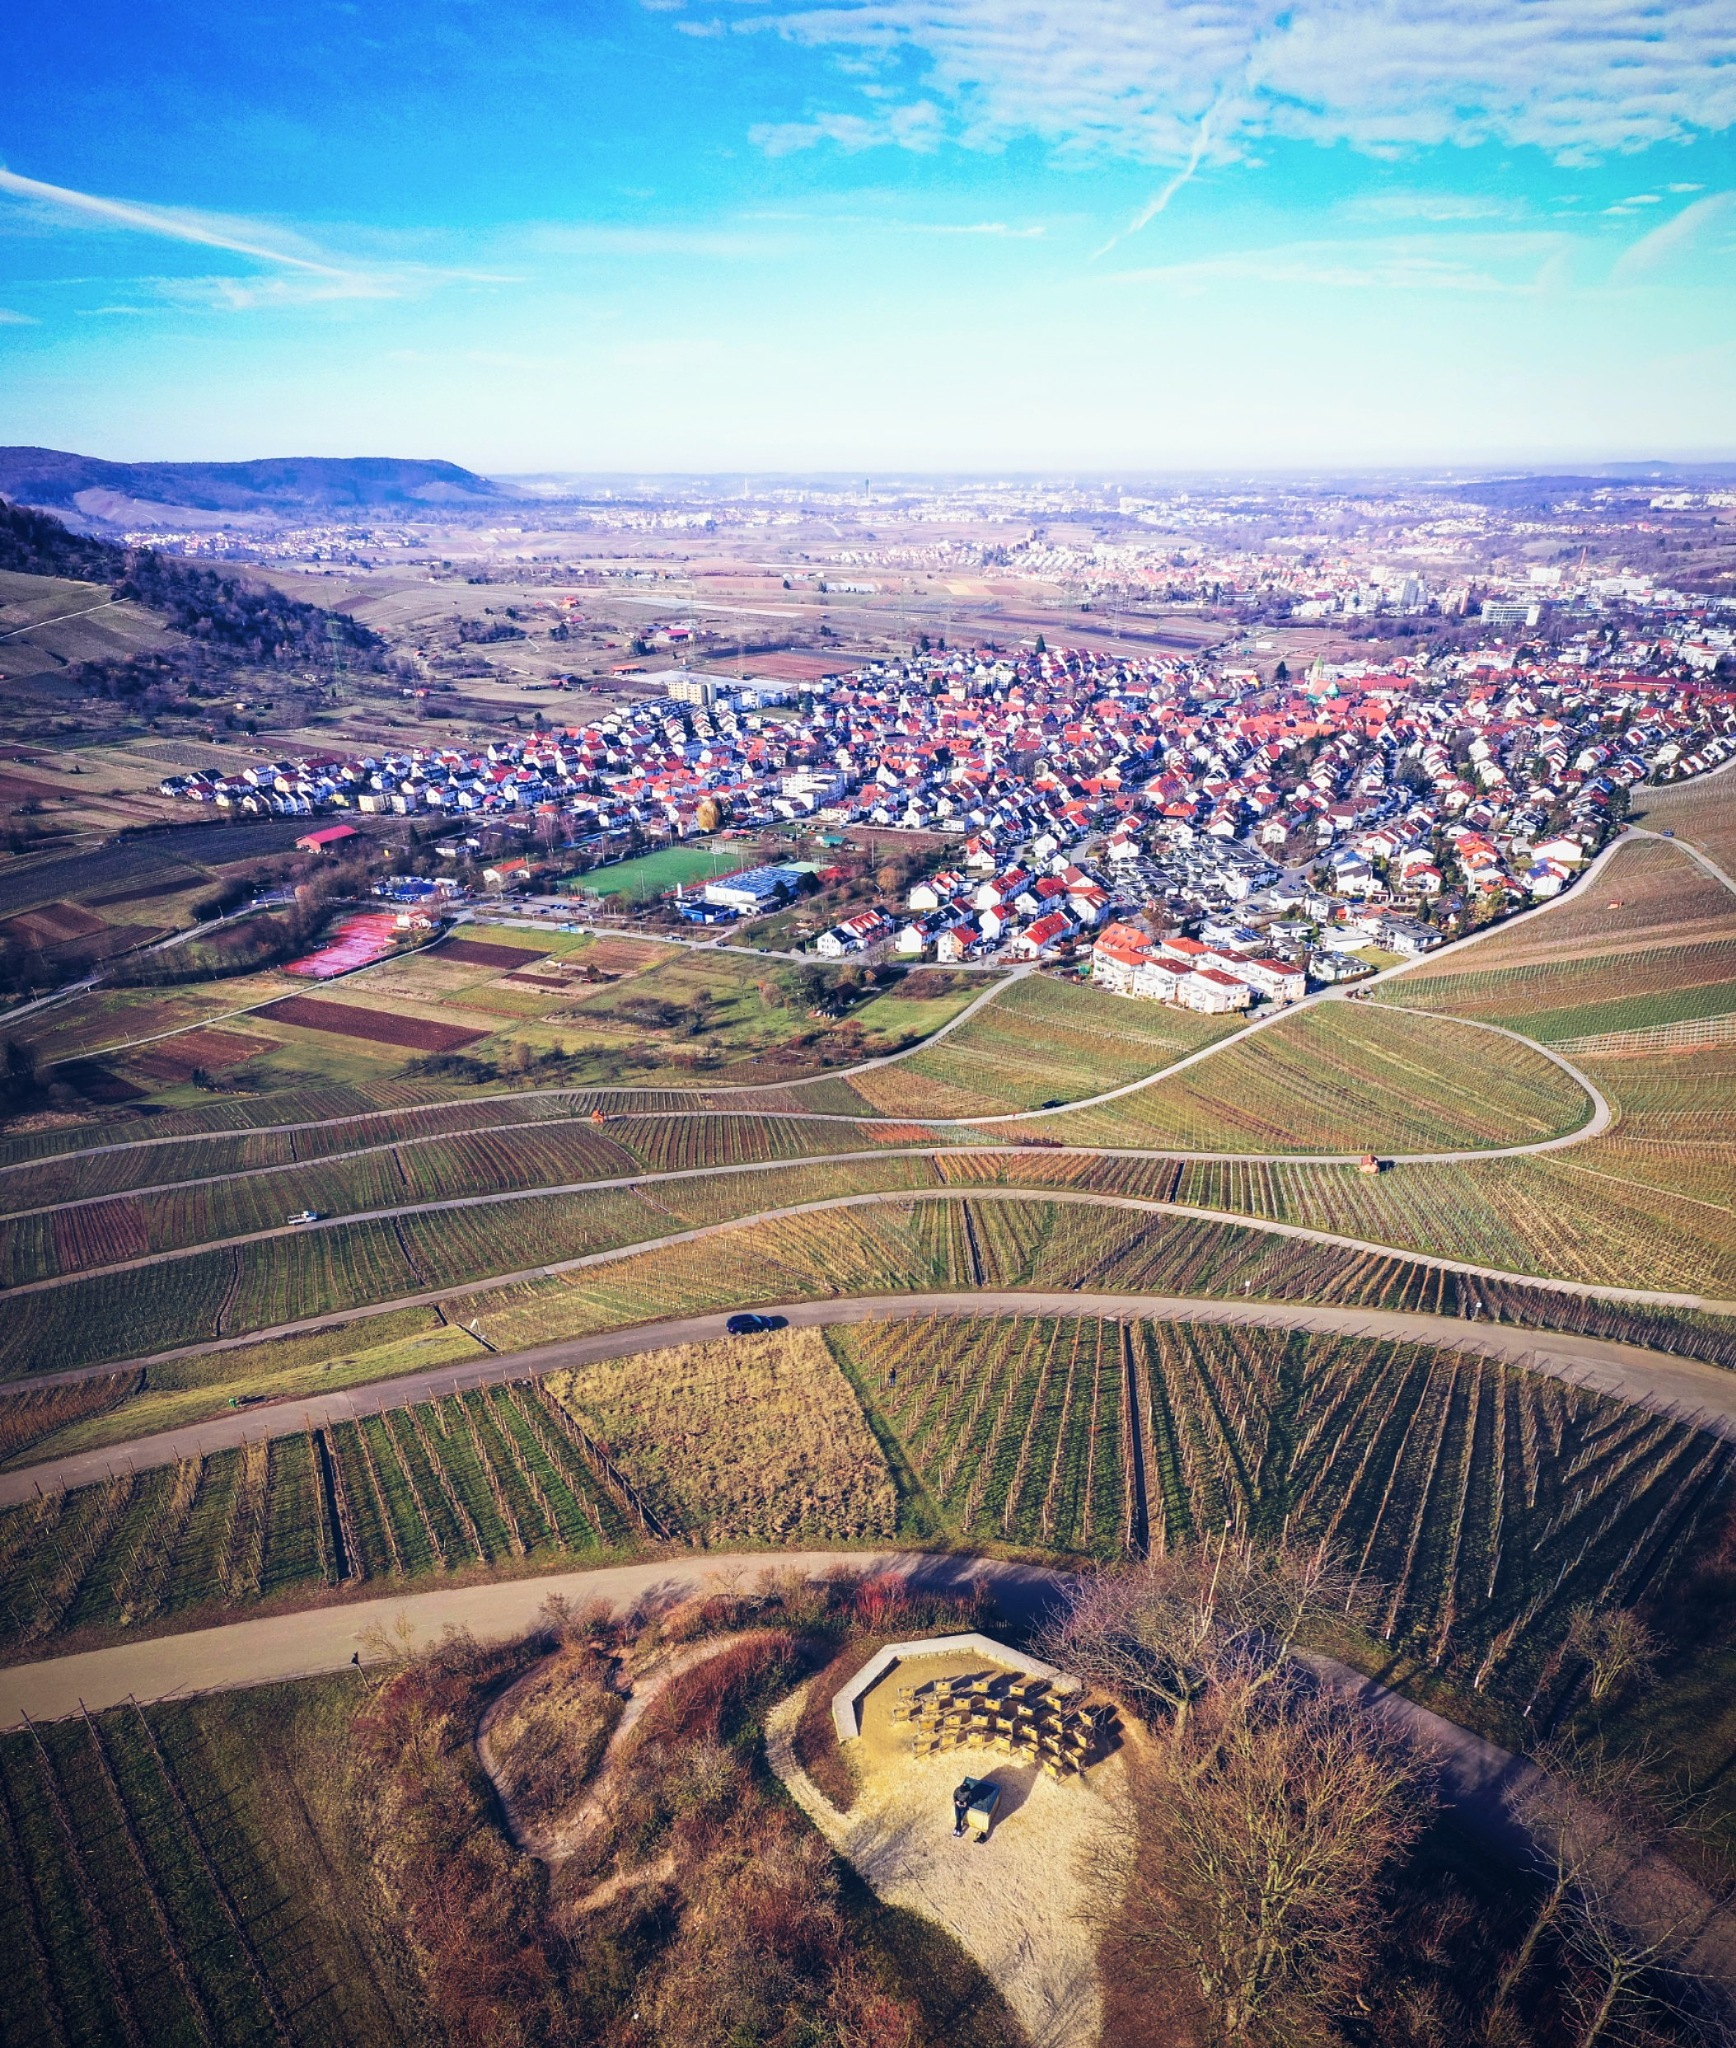 Photo in Landscape #landscape #view #vineyards #hills #town #sky #clouds #weather #sunny #outdoors #aerial #light #details #colors #mood #bird's-eye view #travel #visit #explore #discover #remstalkino #weinstadt #remstal #rems-murr-kreis #baden-württemberg #germany #europe #photography #hobby #drone #dji mavic 2 pro